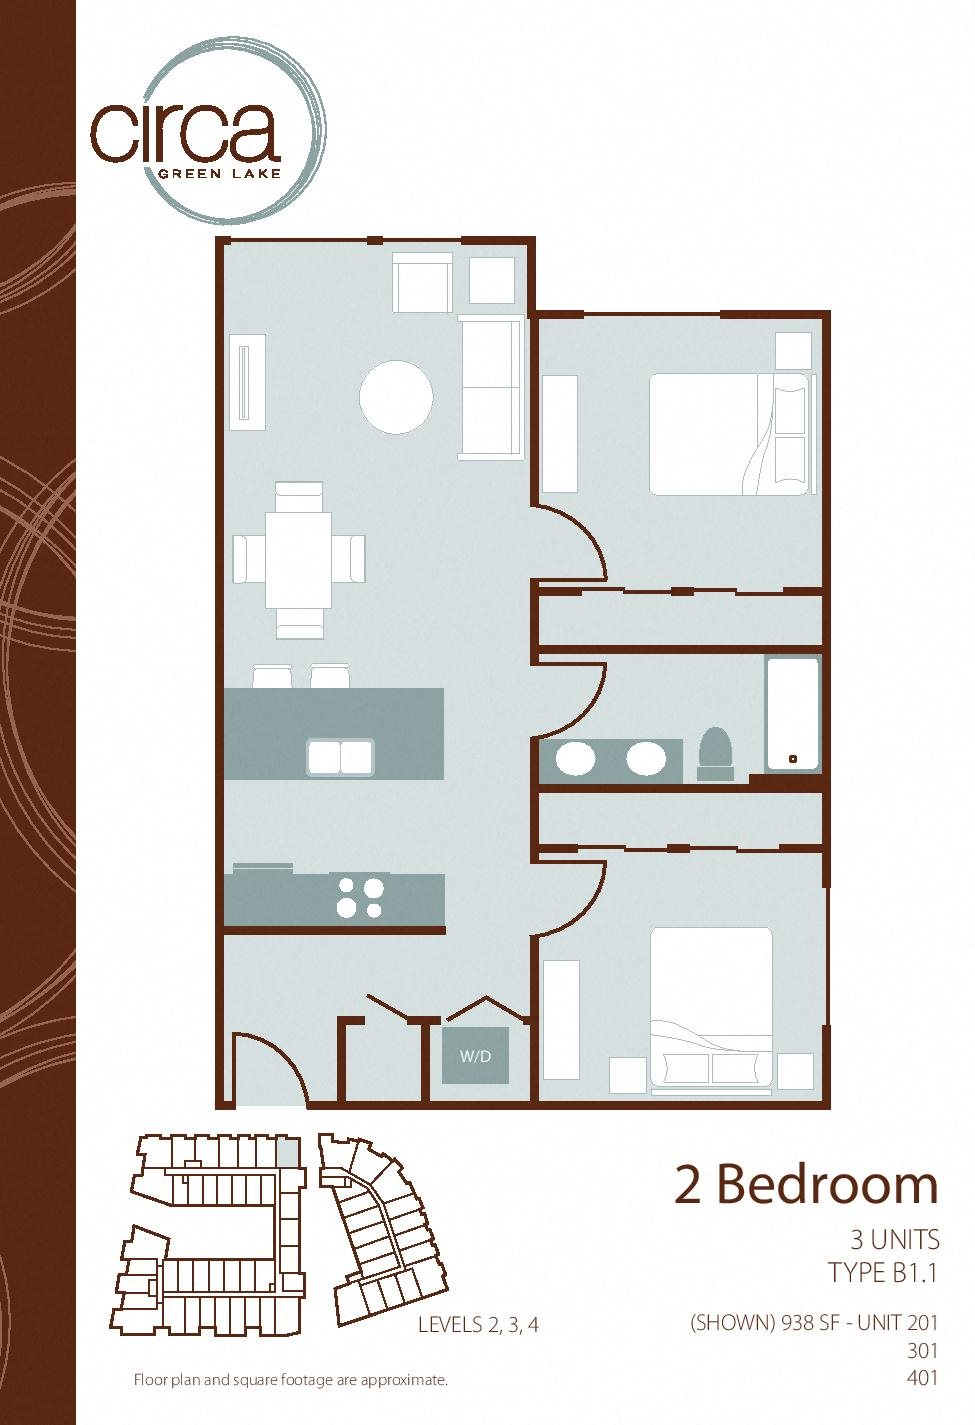 floor plans of circa green lake apartments in seattle, wa